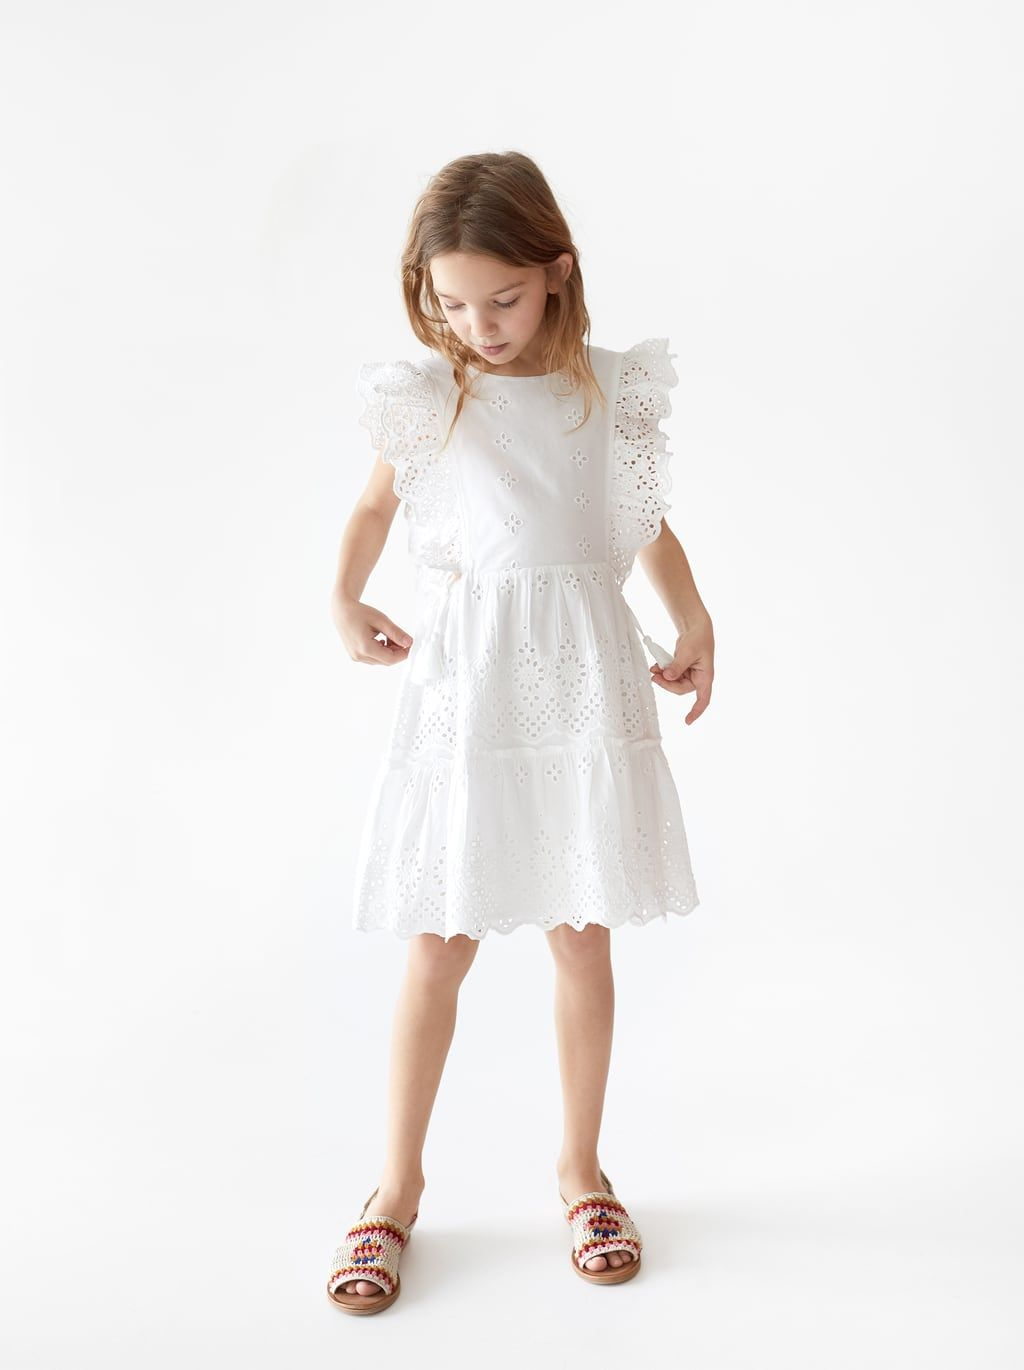 19a9af6c1c Dress with swiss embroidery | stuff for the kiddo | Dresses ...